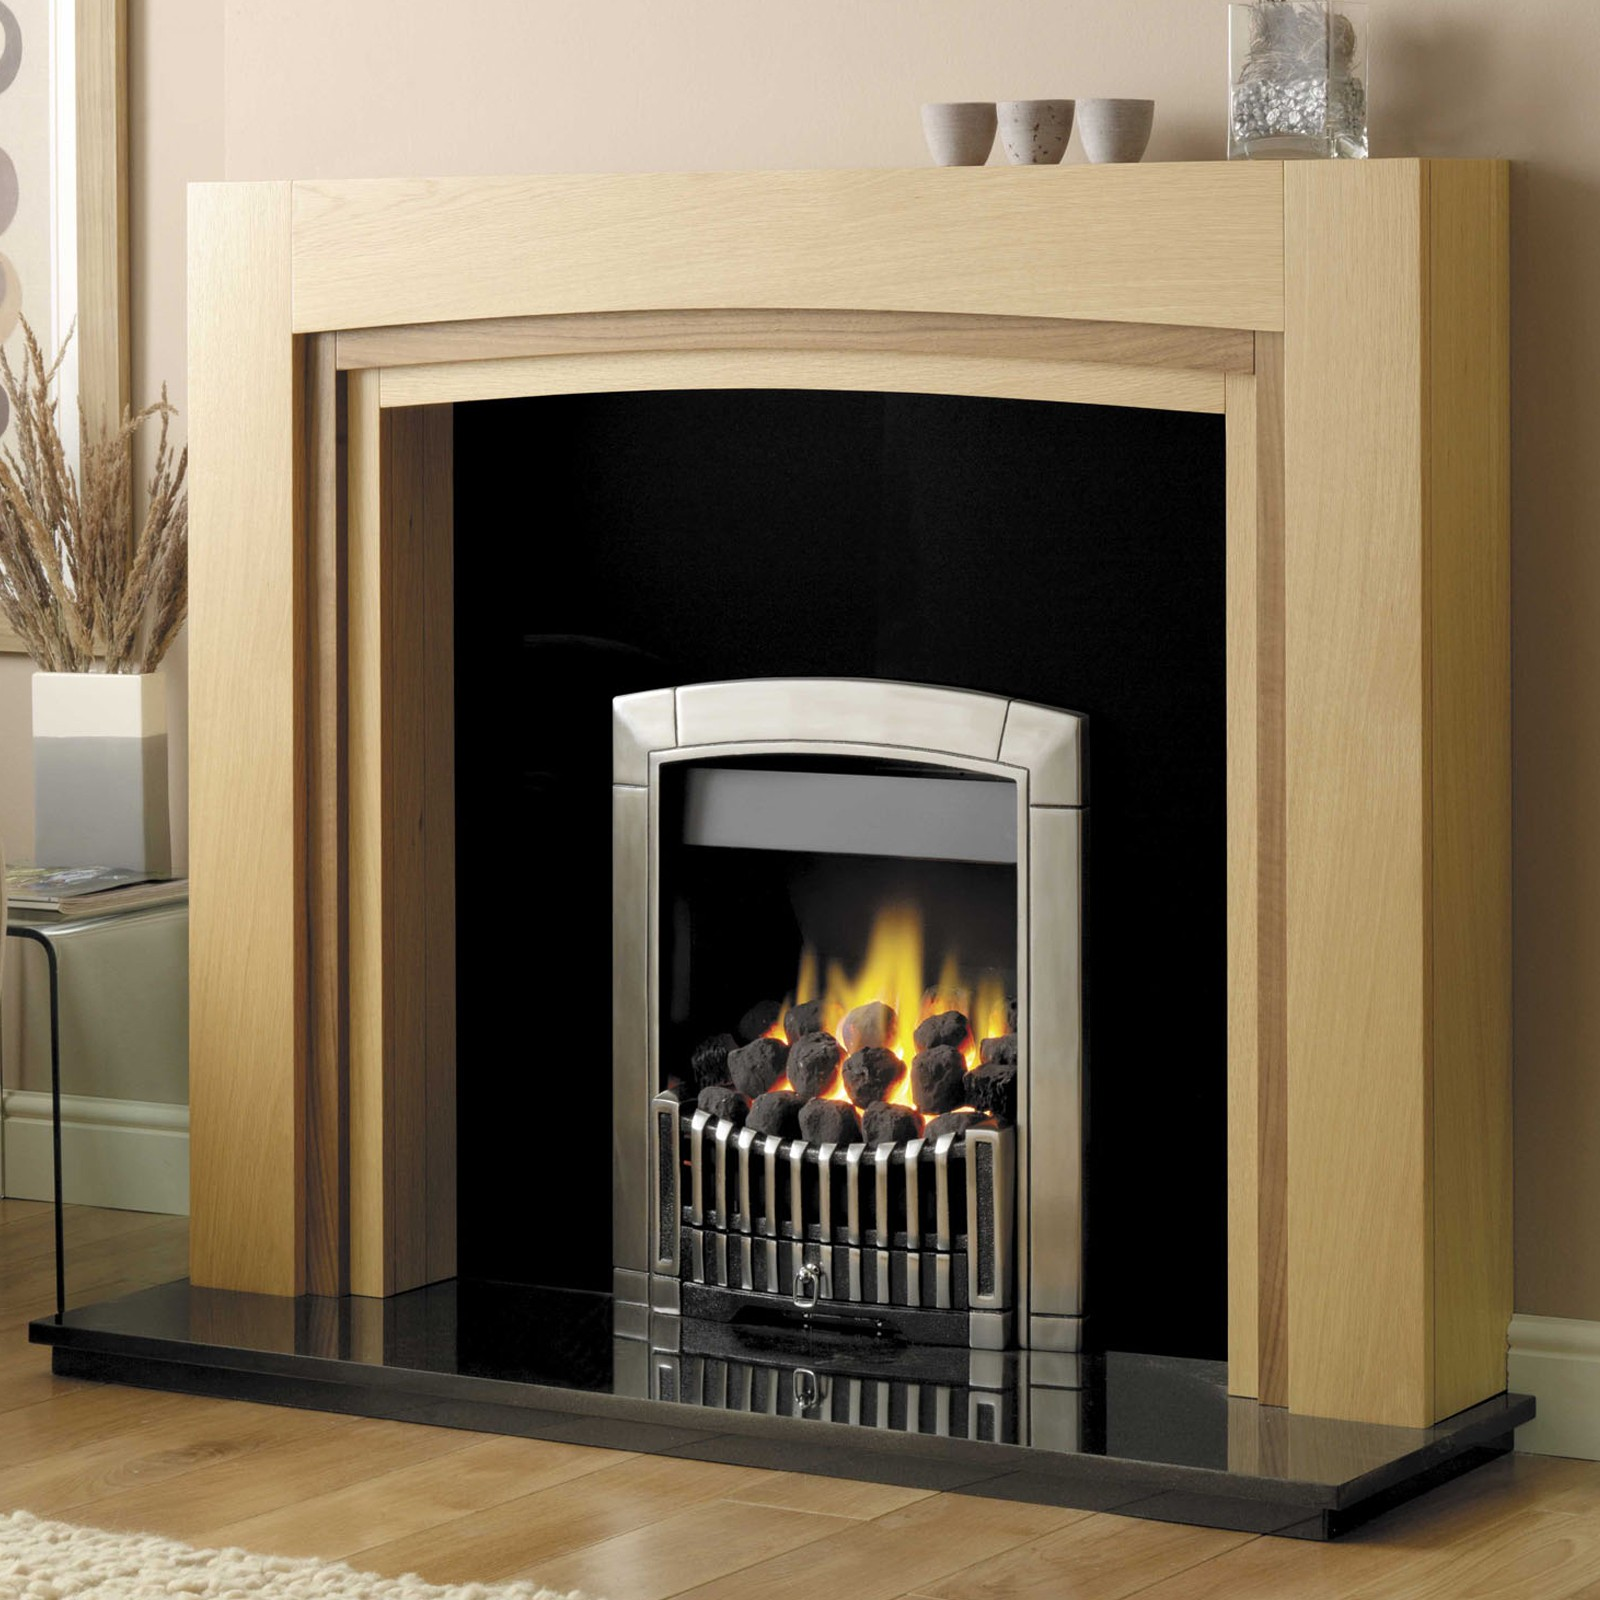 Best prices around gb mantels romford fireplace suite here to help - Mantelpieces fireplaces ...